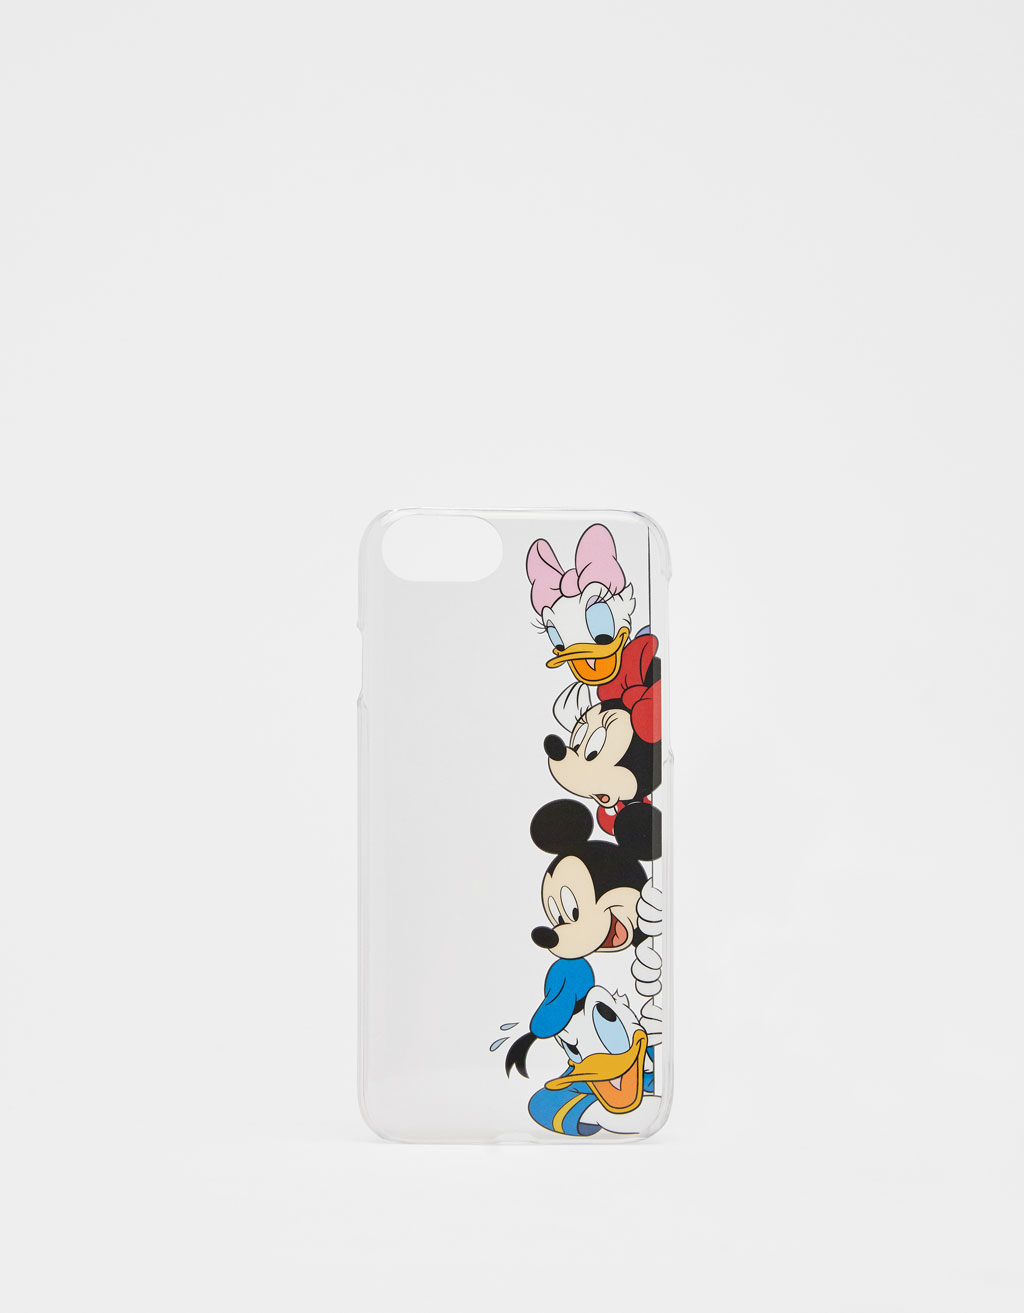 Coque Disney iPhone 6 / 6S / 7 / 8